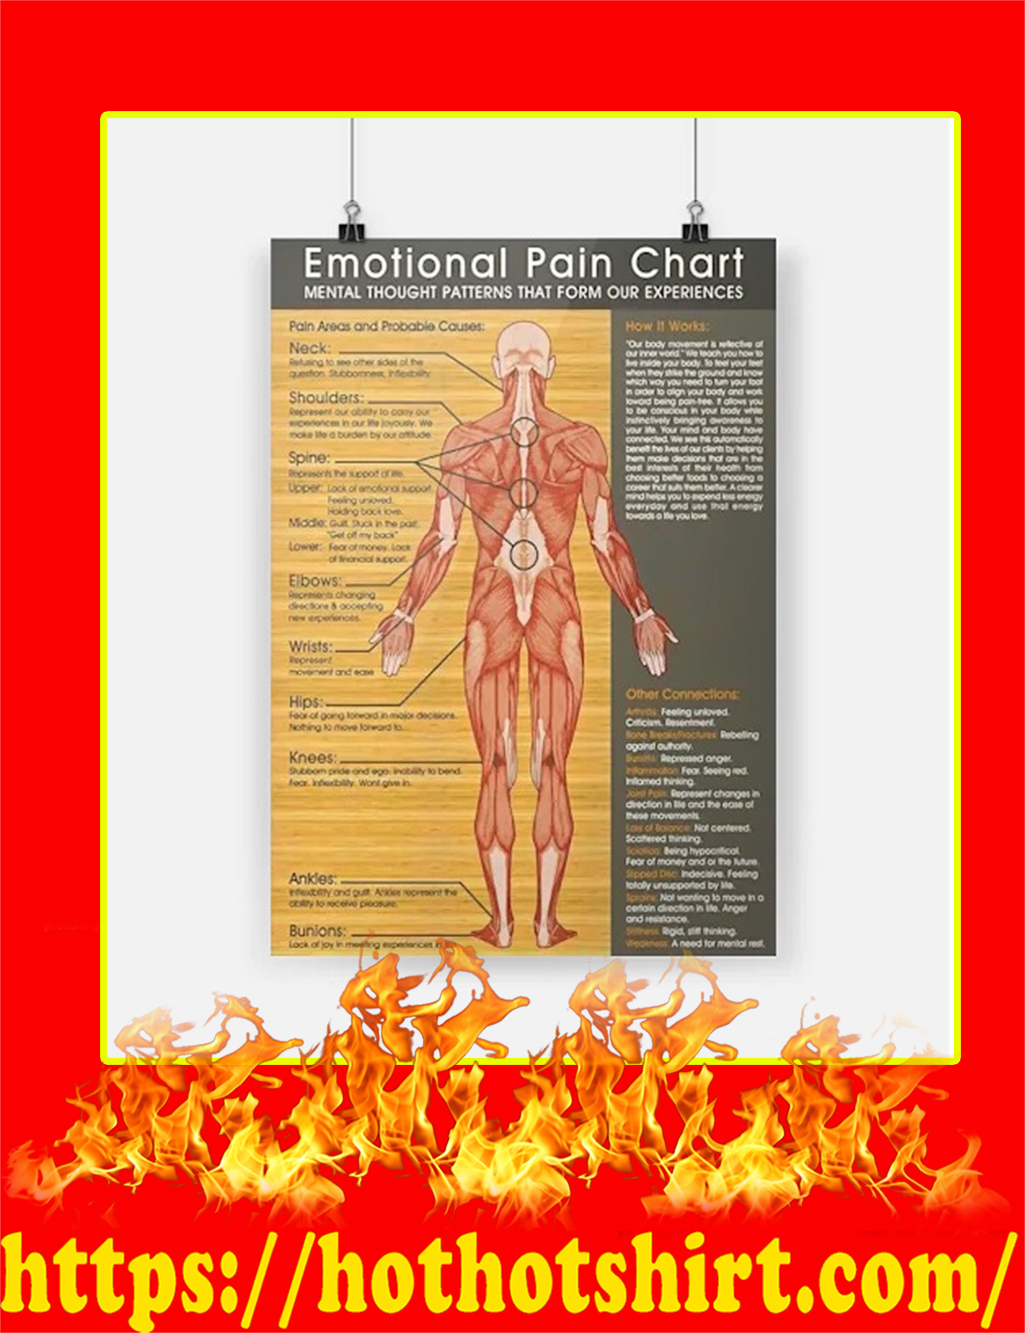 Emotional Pain Chart Poster - A3